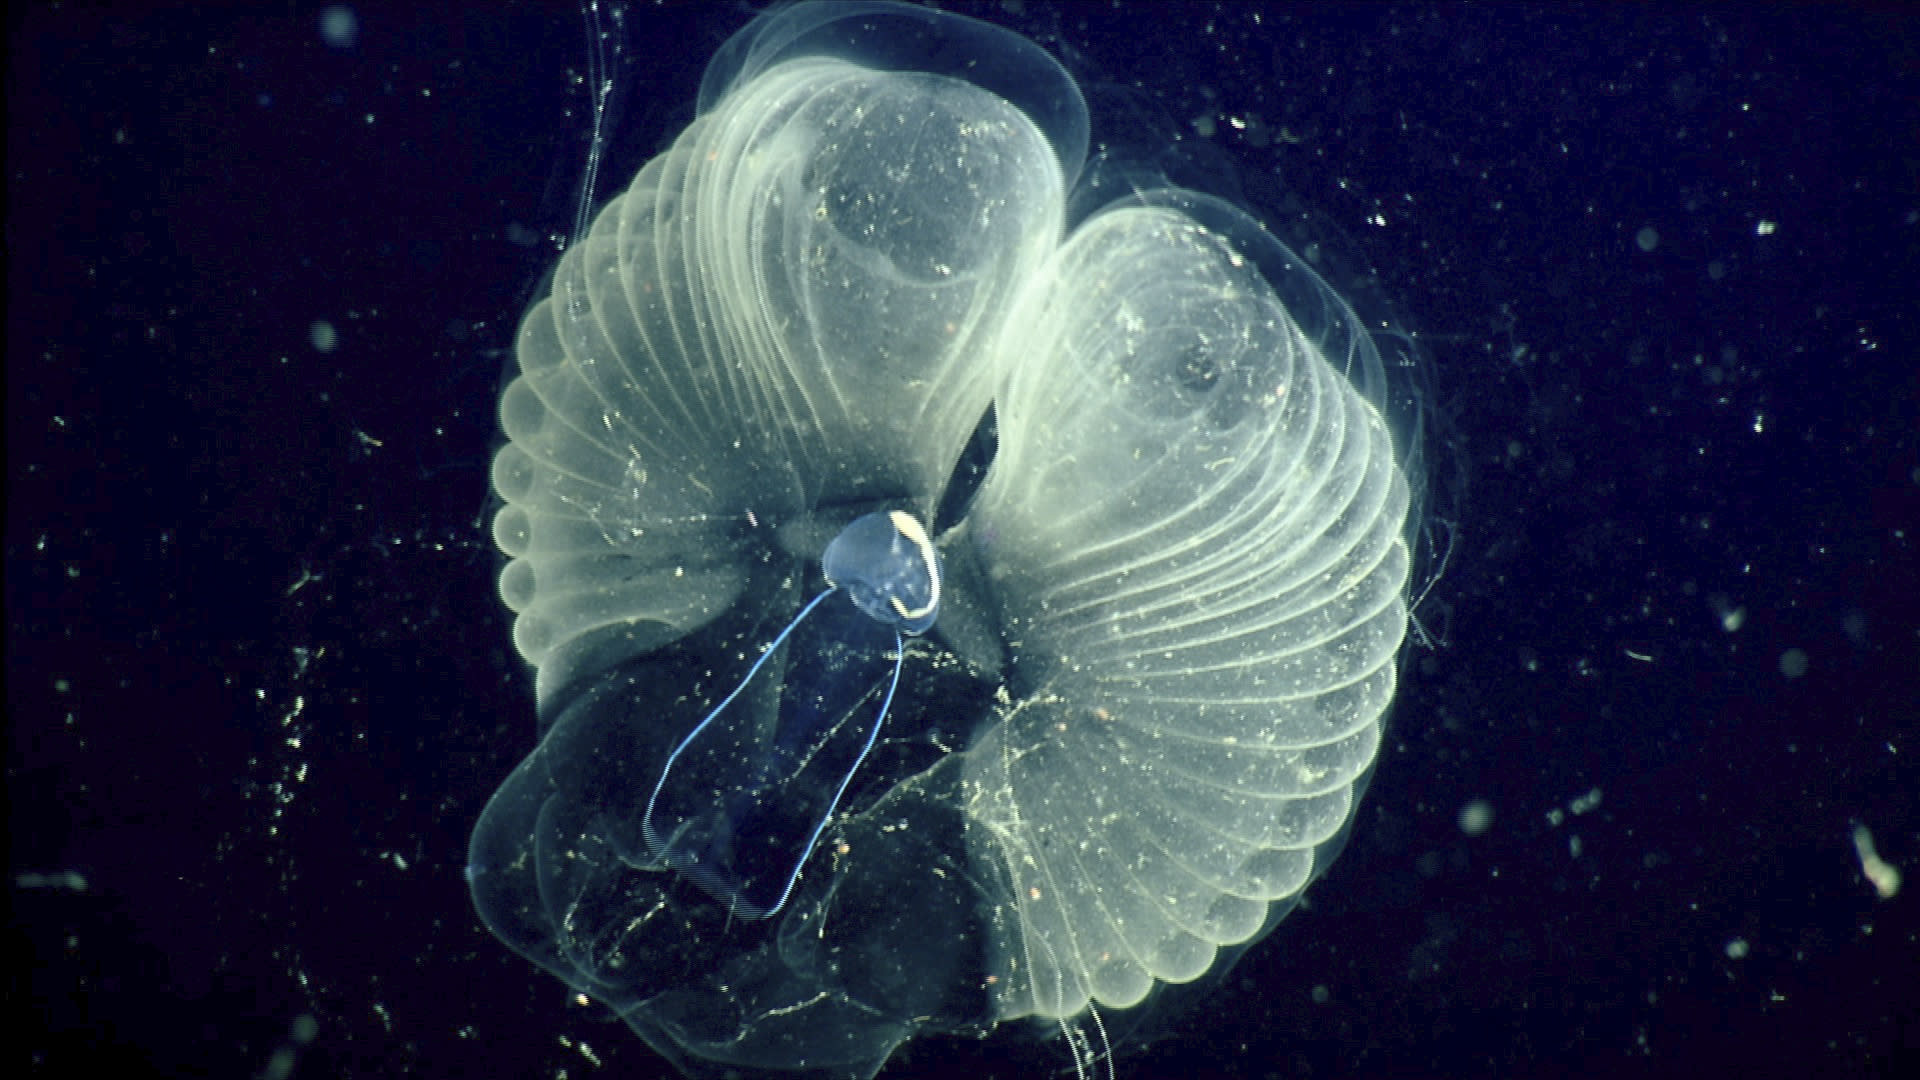 """This 2002 photo provided by the Monterrey Bay Aquarium Research Institute shows a close up view of a """"giant larvacean"""" and its """"inner house"""" - a mucus filter that the animal uses to collect food. The creature, usually three to ten centimeters (about one to four inches) in length, builds a huge mucous structure that functions as an elaborate feeding apparatus, guiding food particles into the animal's mouth. When the filters get clogged, the larvacean abandons them. The abandoned filters sink toward the seafloor, and become an important food source for other marine animals. (MBARI via AP)"""